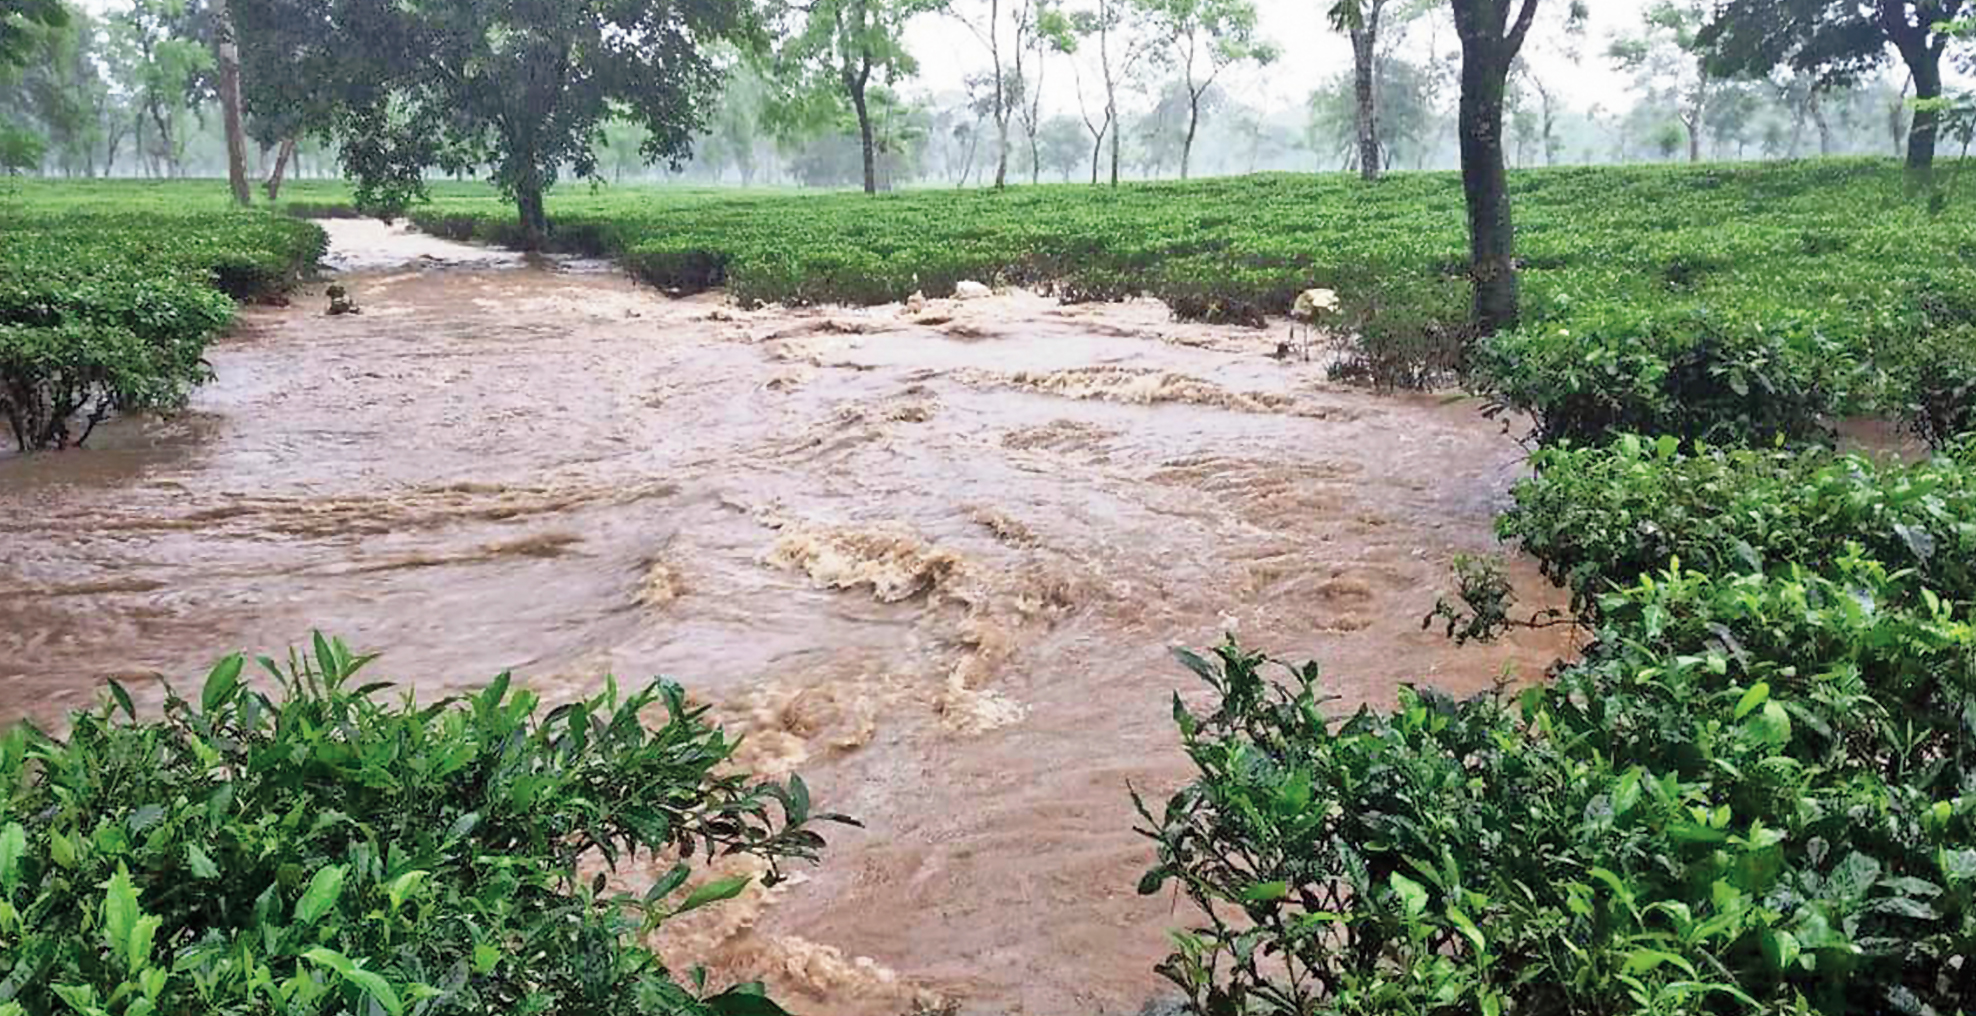 The Debpara tea estate  inundated by the overflowing Hatinala stream in Banarhat, Jalpaiguri.